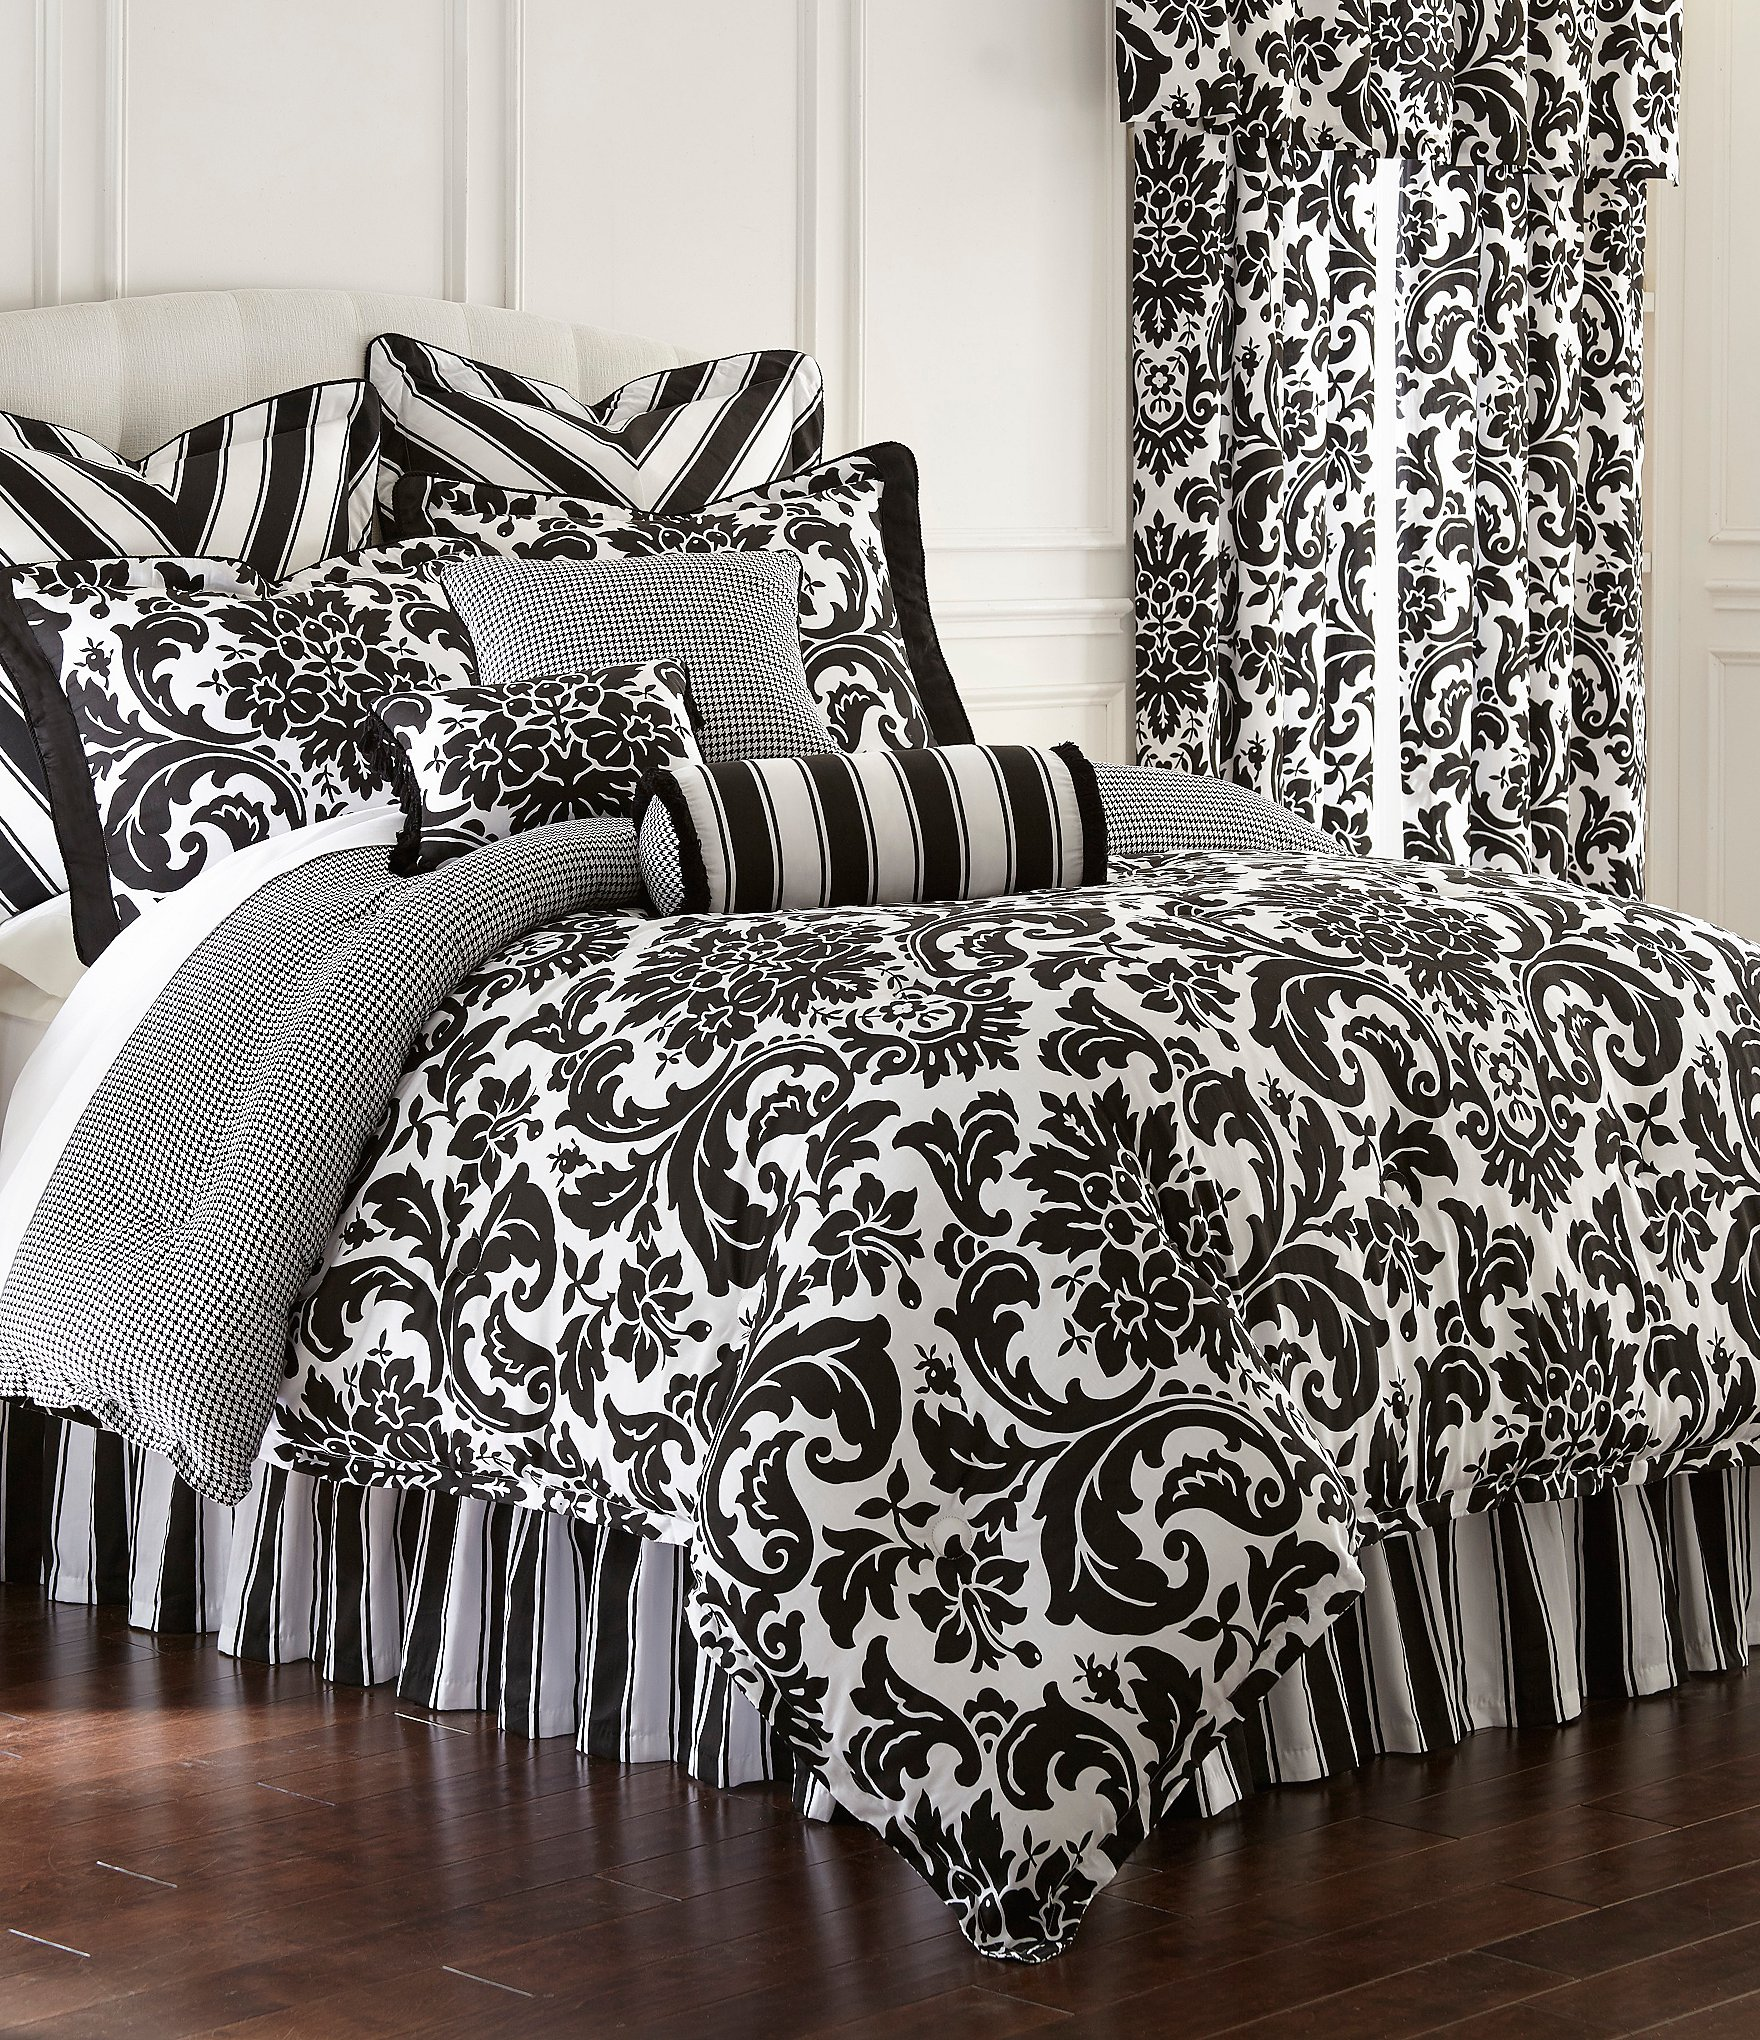 Bed sheet set black and white - Bed Sheet Set Black And White 26